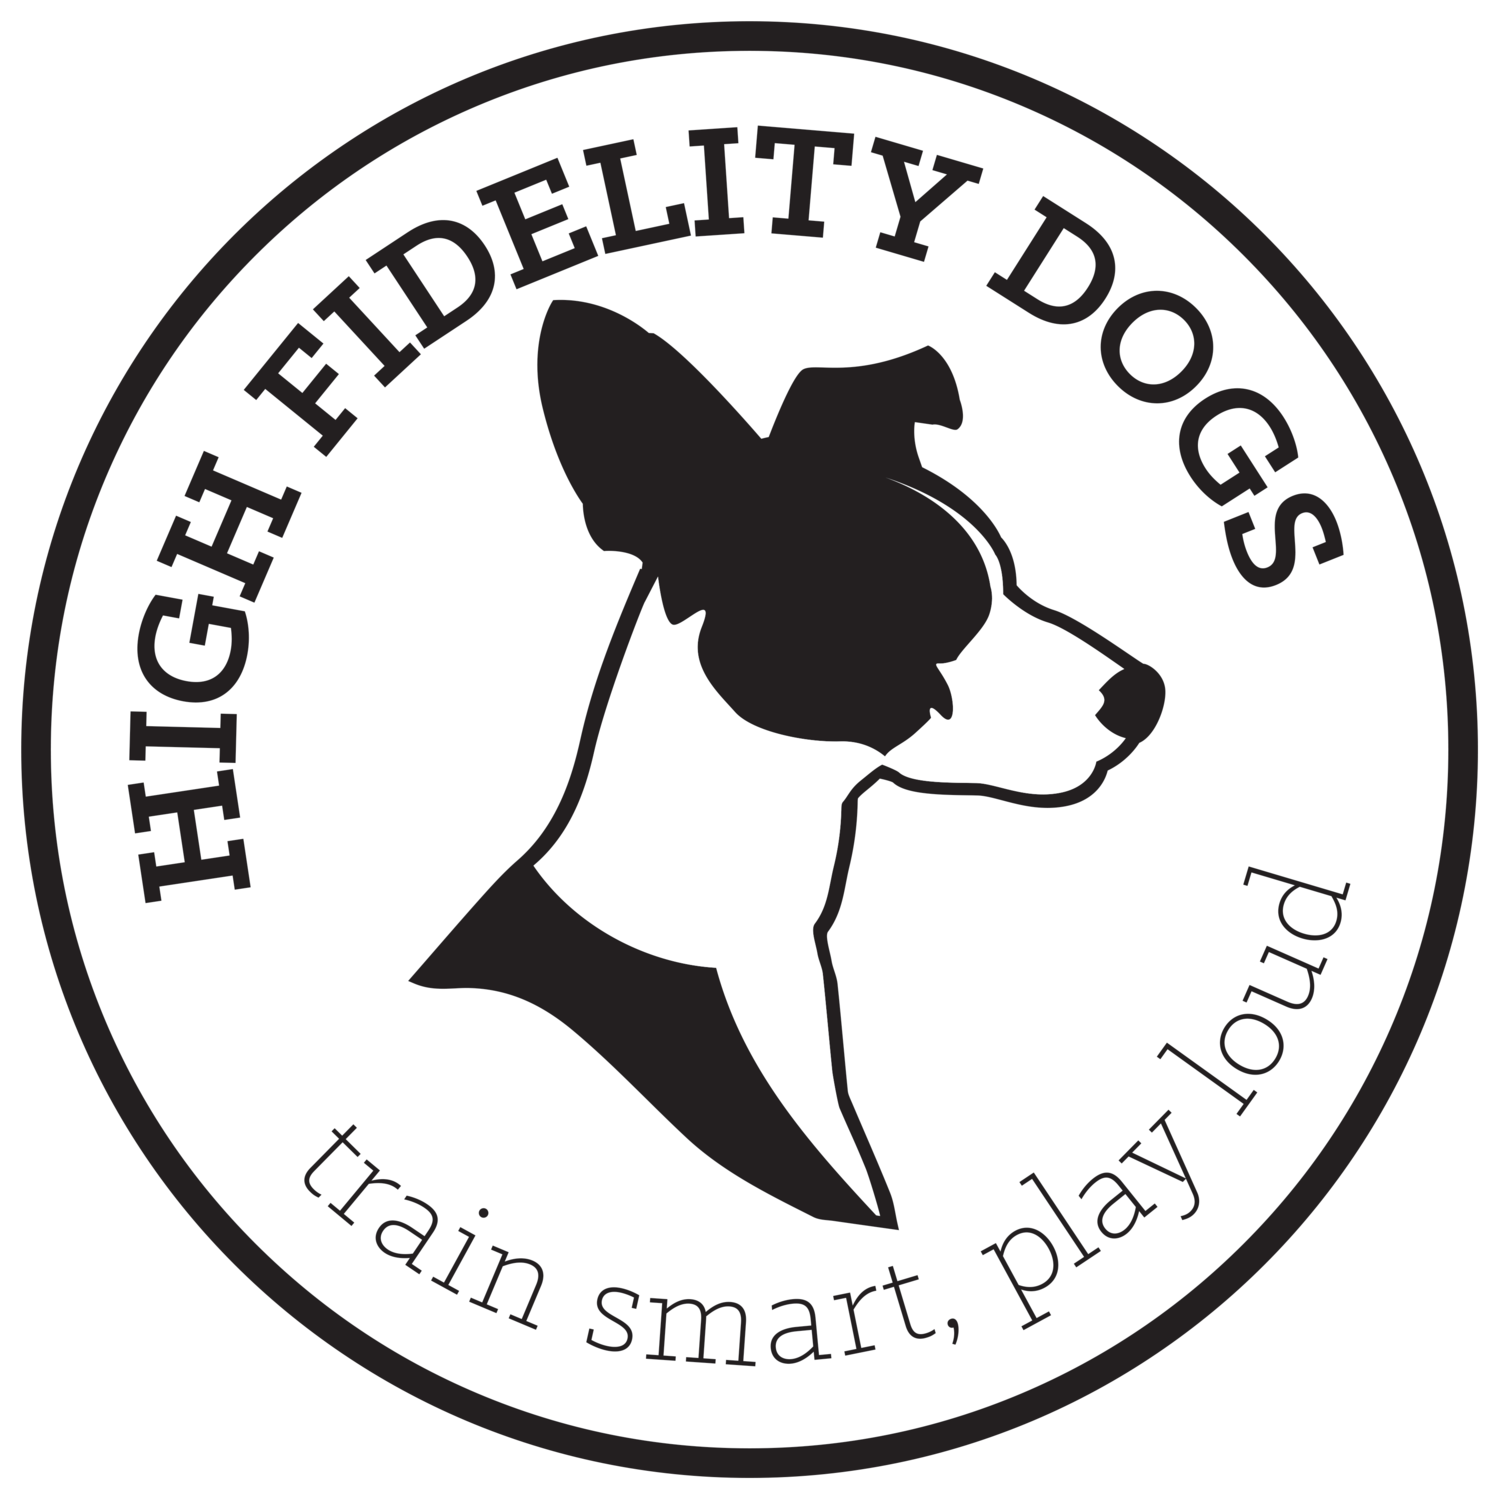 High Fidelity Dogs